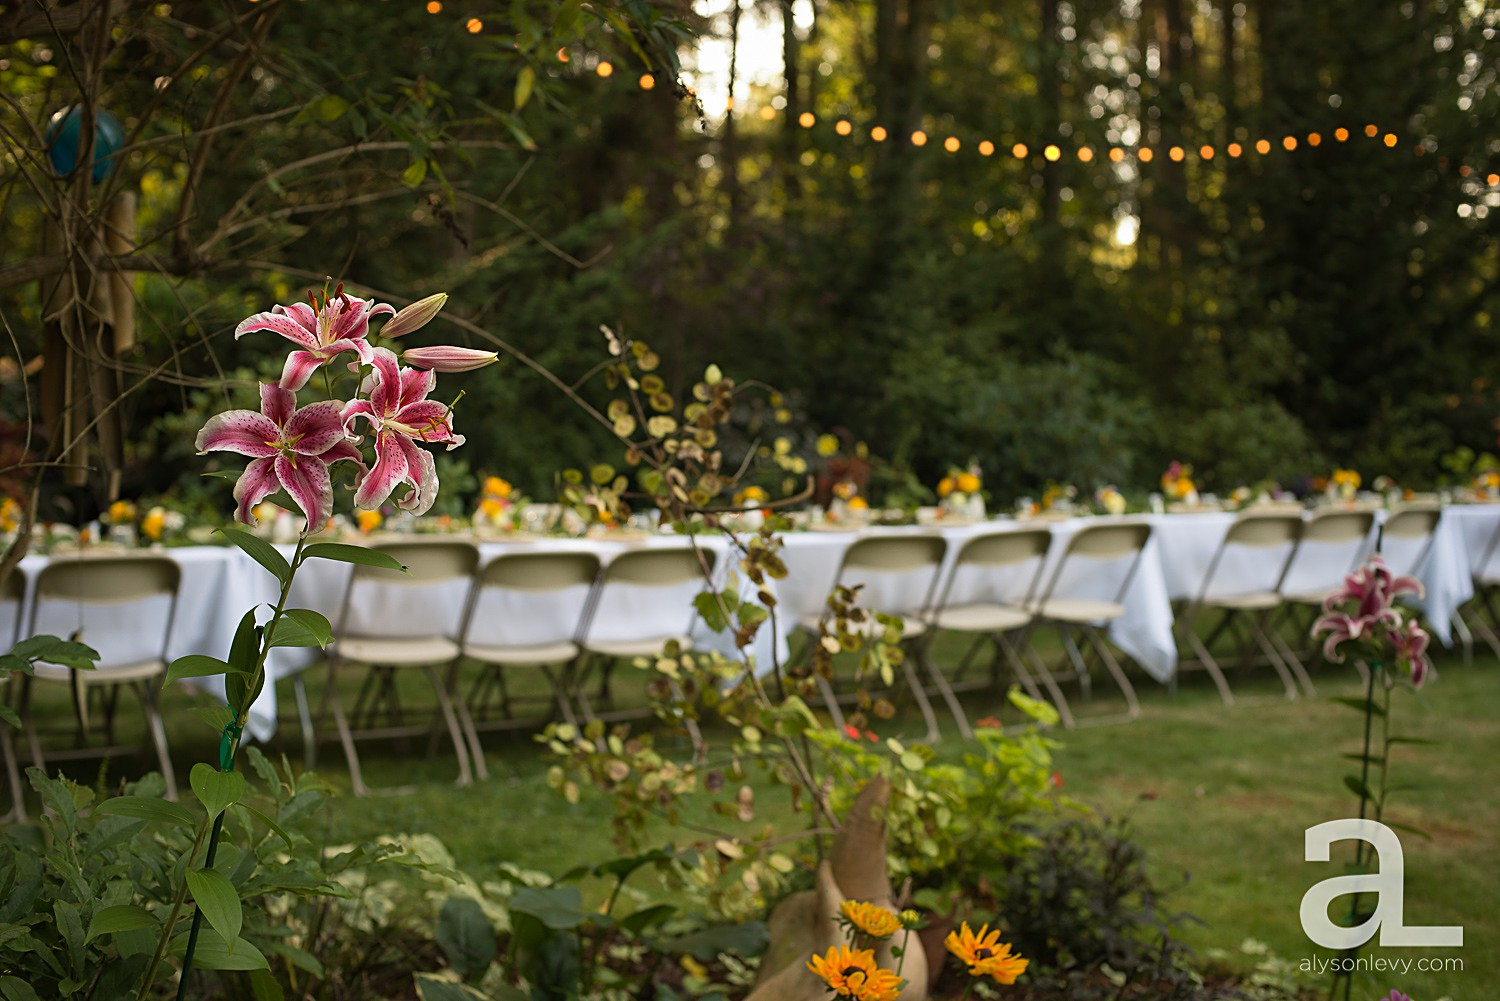 Backyard-Rehearsal-Dinner-Photography_0012.jpg